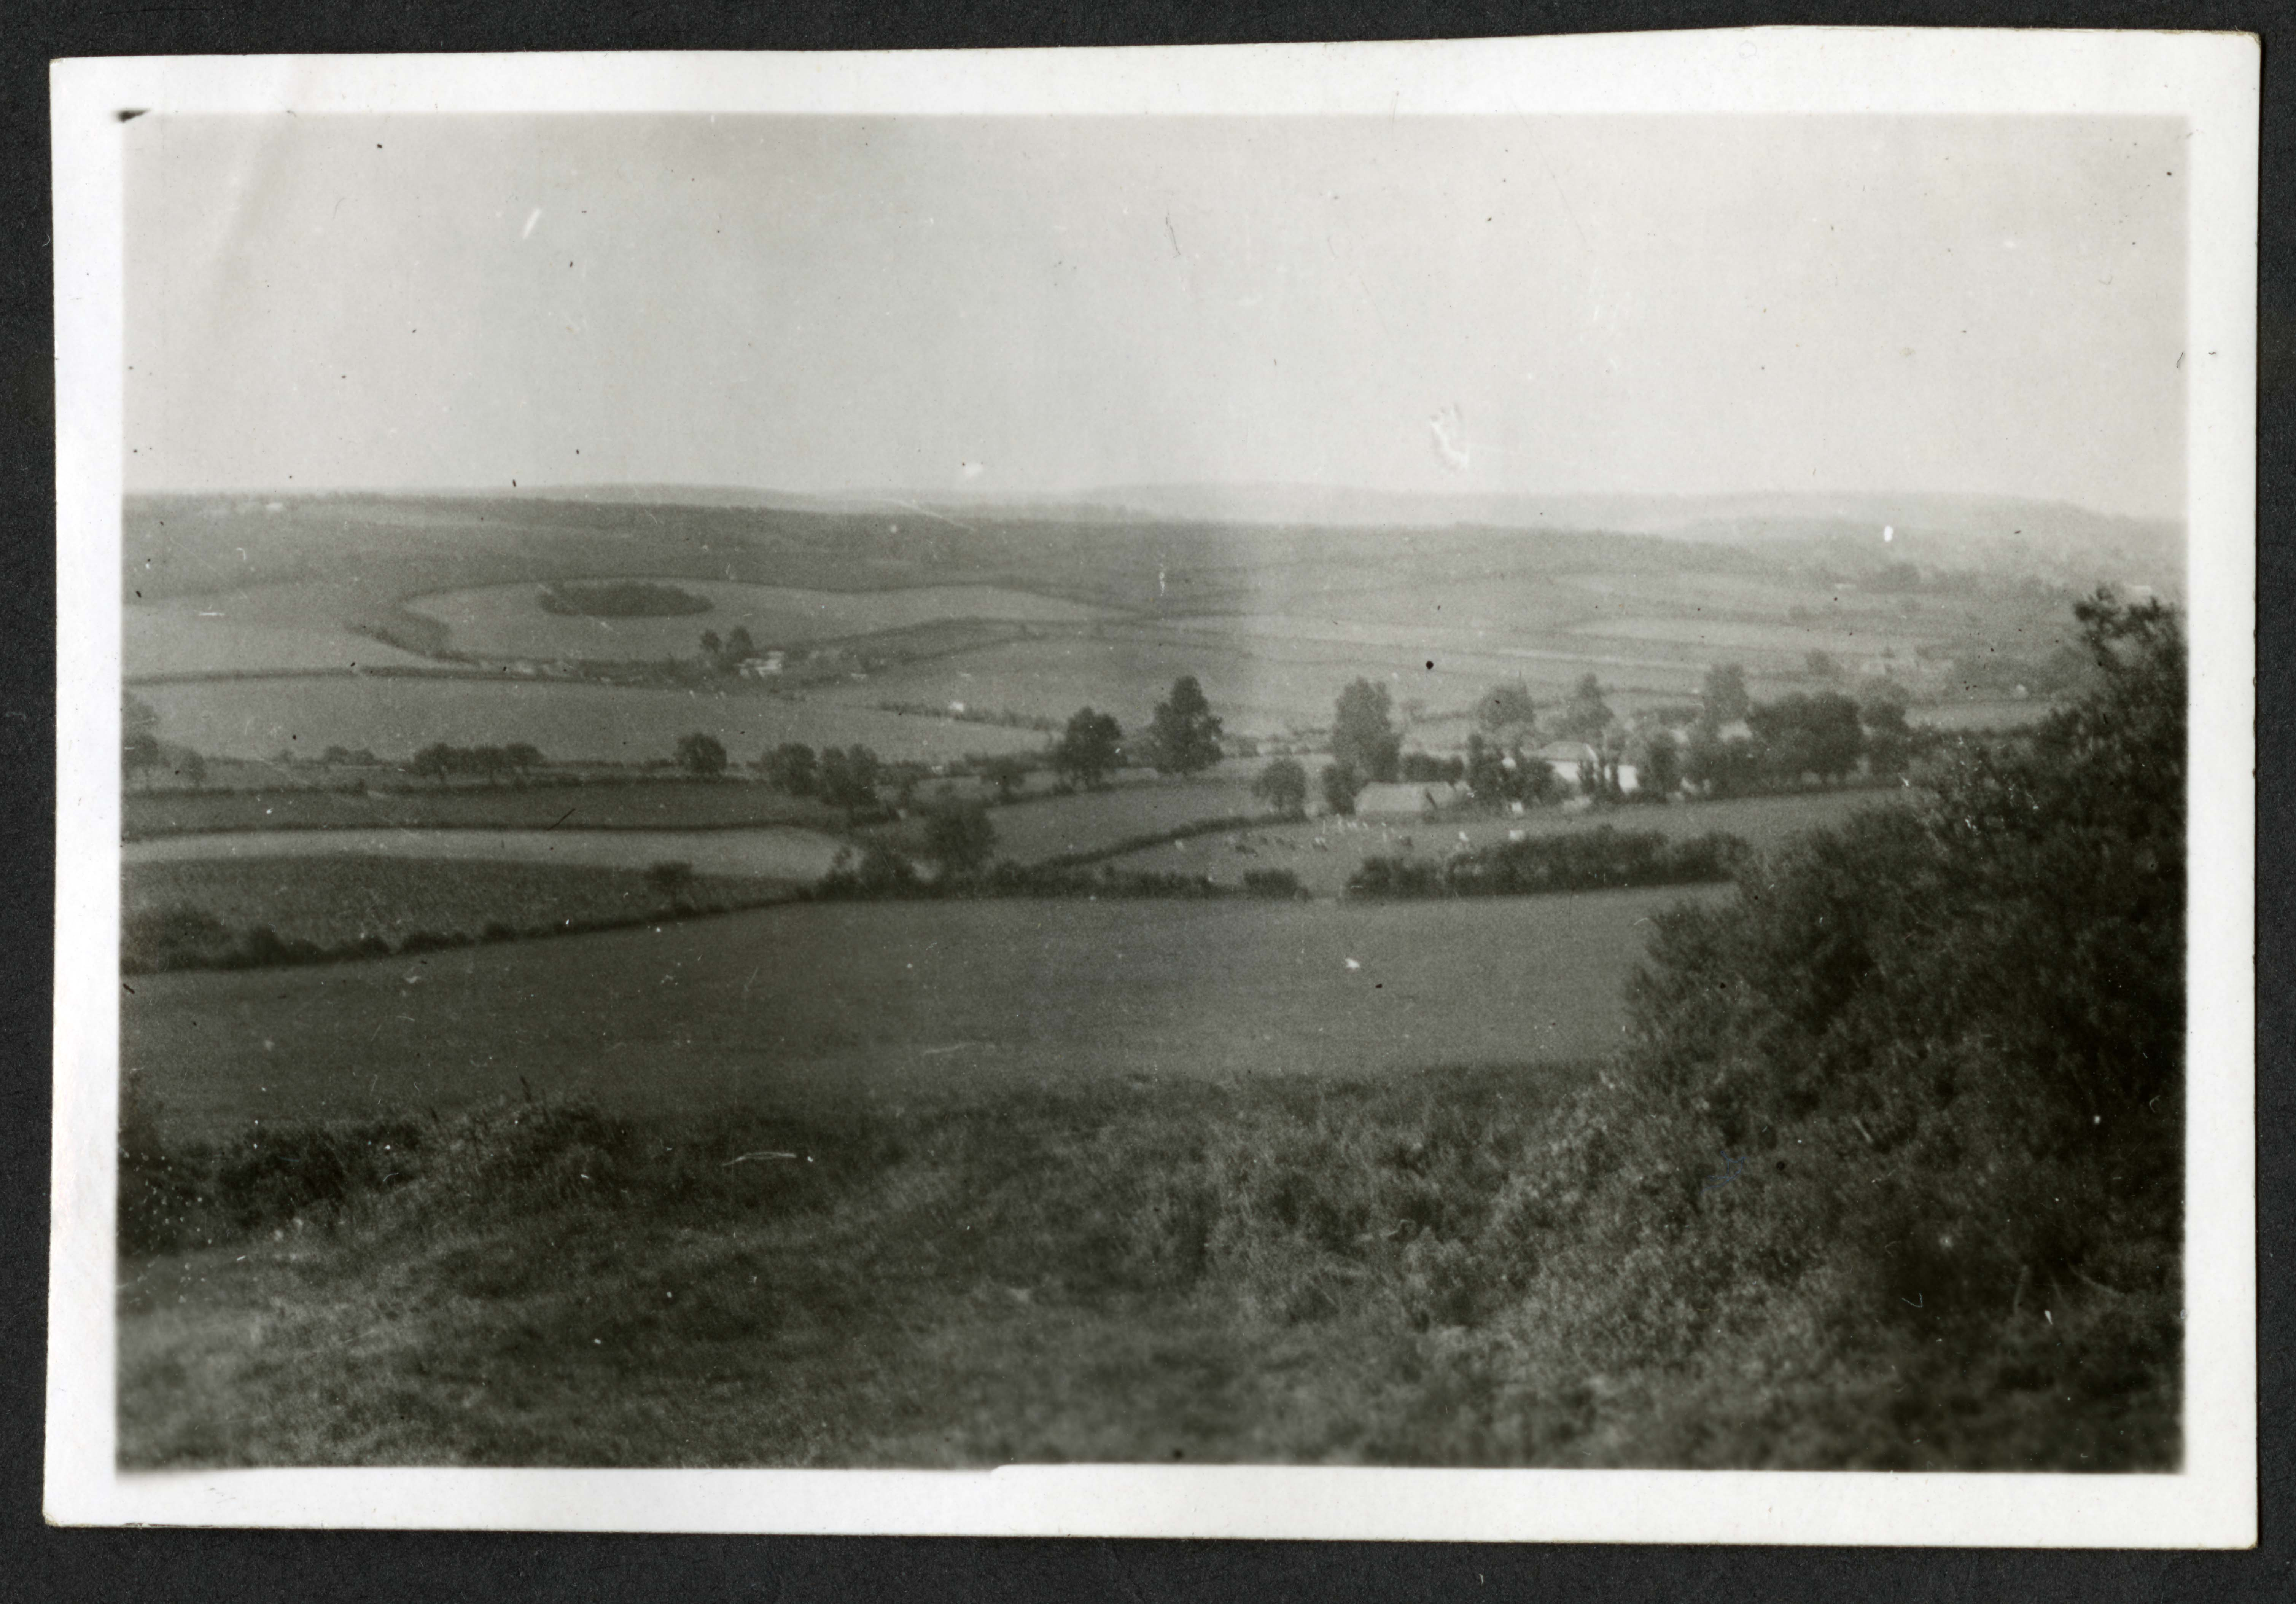 English countryside, Record Unit 7091: Science Service, Records, circa 1910-1963, Smithsonian Institution Archives, image no. SIA2015-003205.